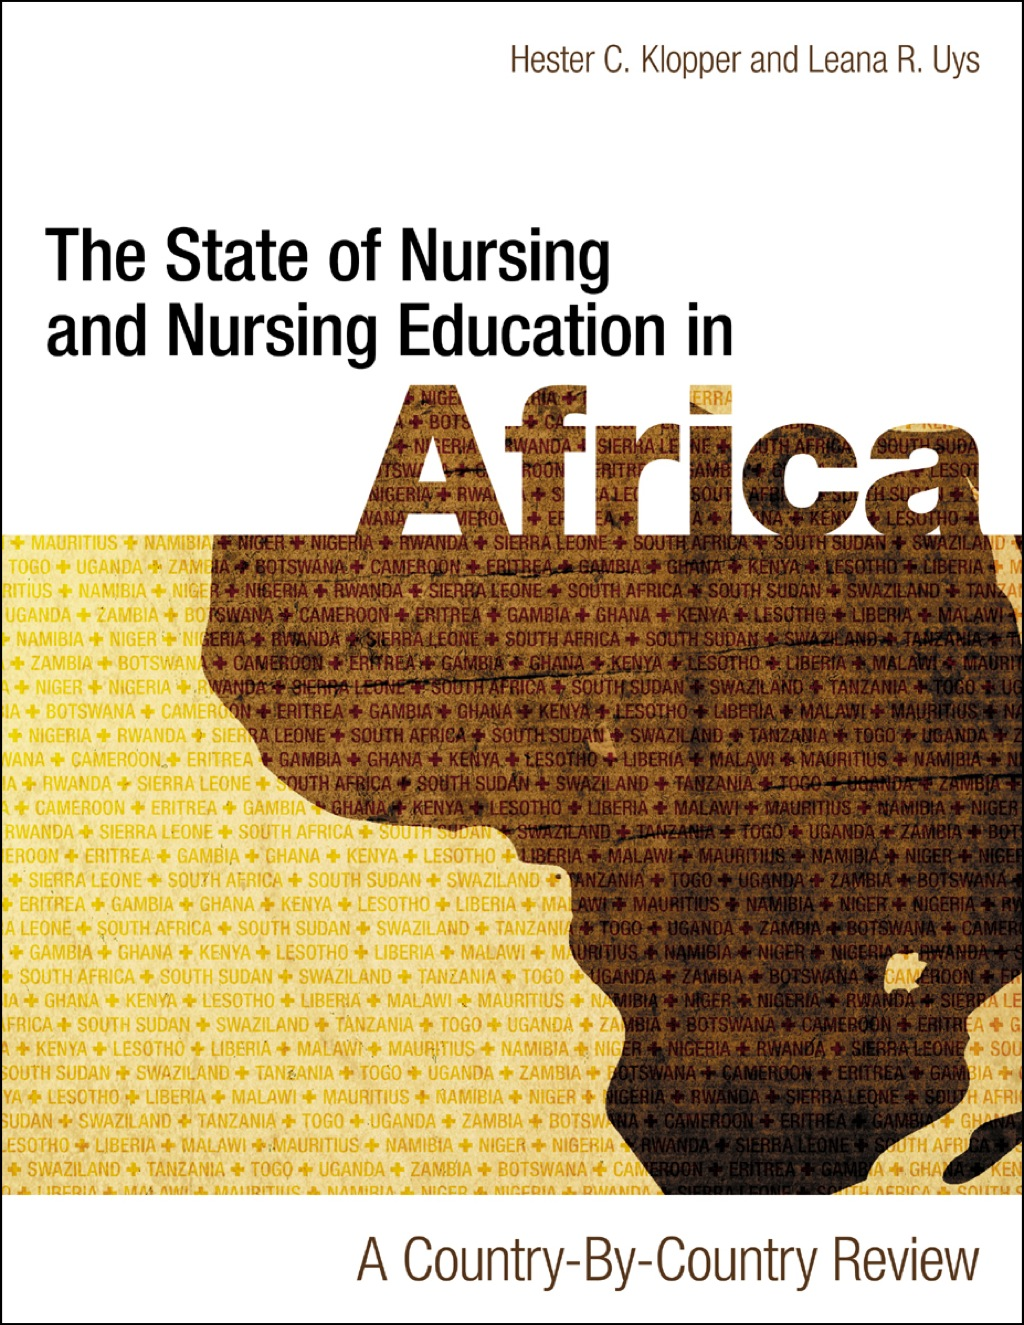 The State Of Nursing And Nursing Education In Africa: A Country-by-country Review (ebook)